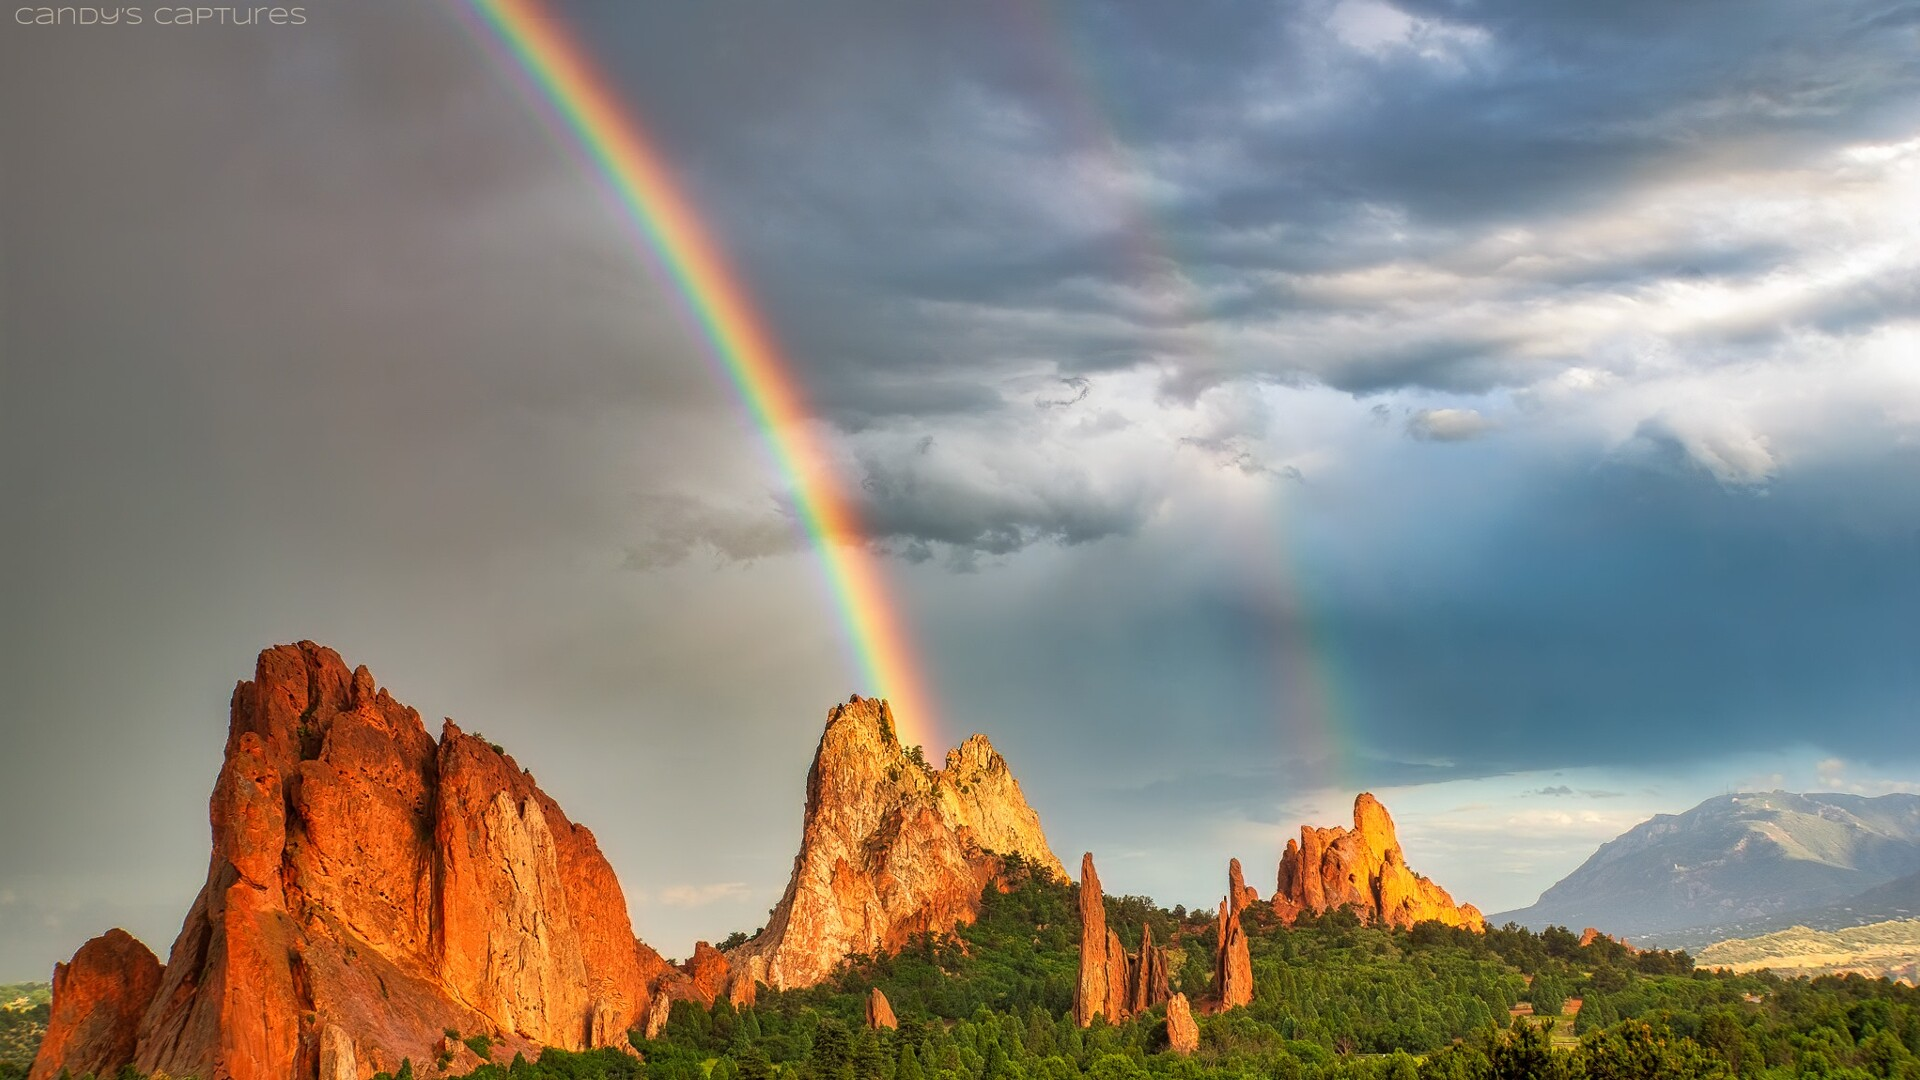 Garden of the Gods Rainbow Candy's Captures.jpg